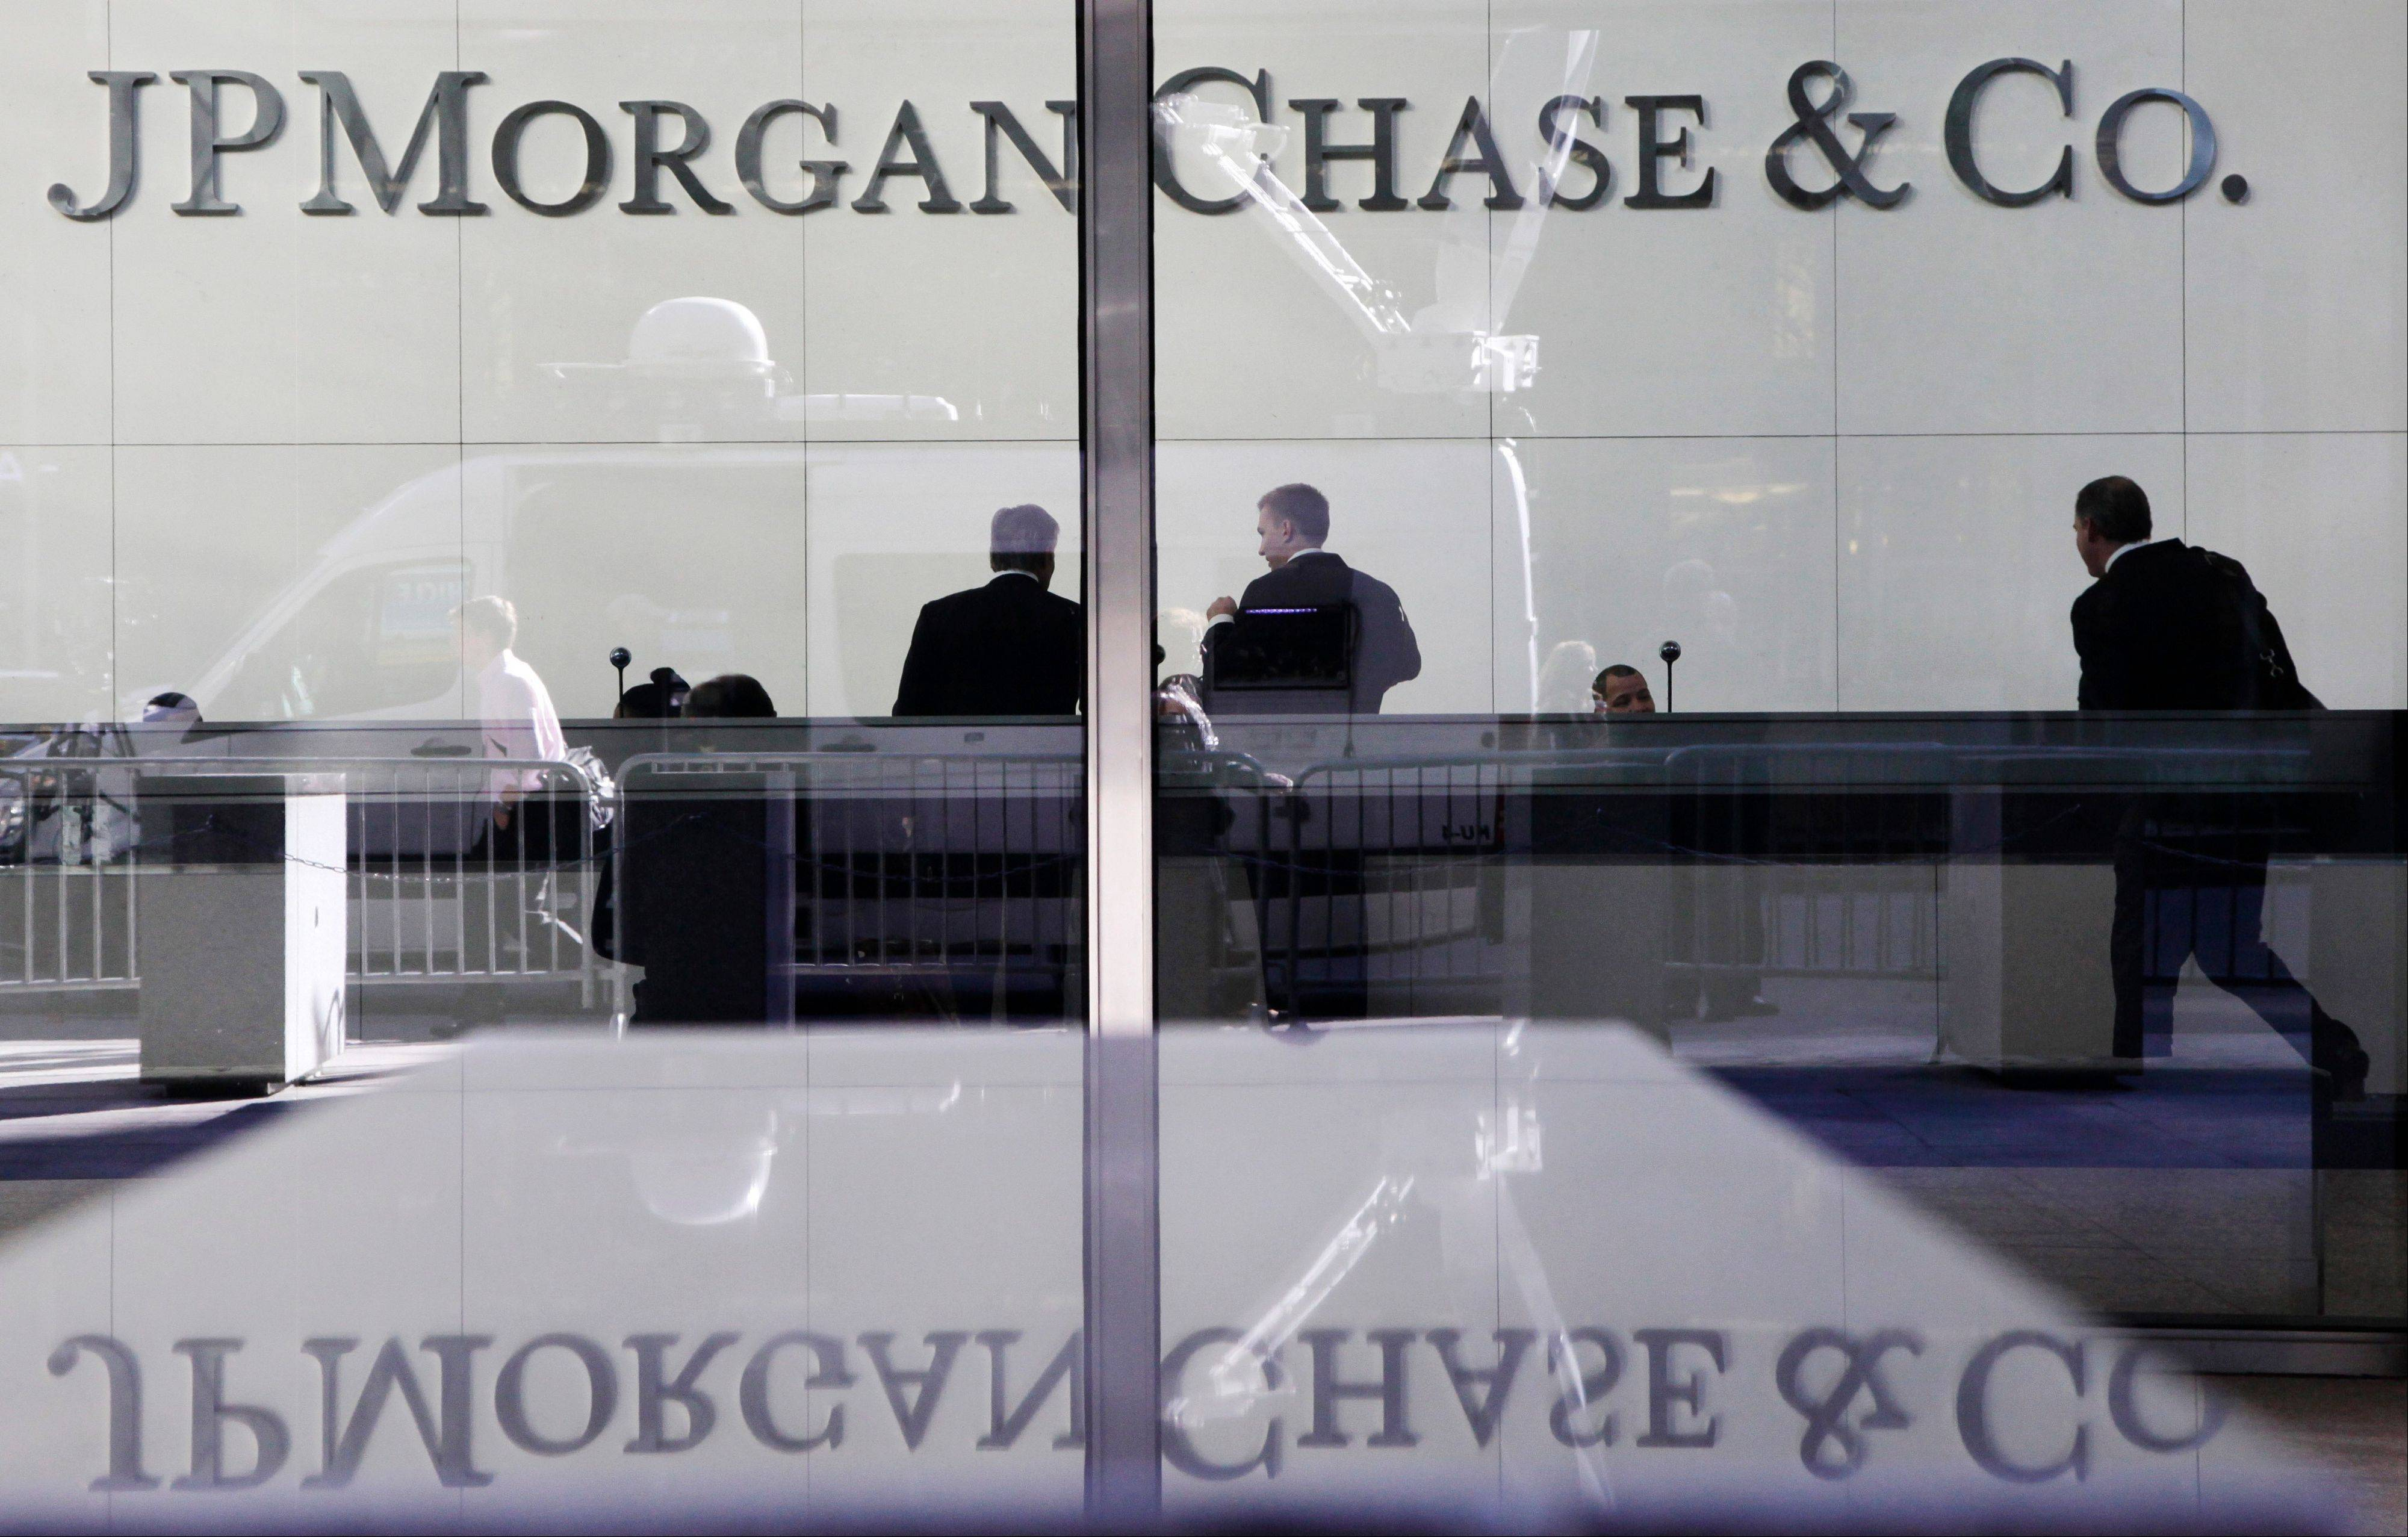 JPMorgan Chase, the biggest U.S. bank, says its second-quarter earnings surged from a year ago as profits from investment banking grew.